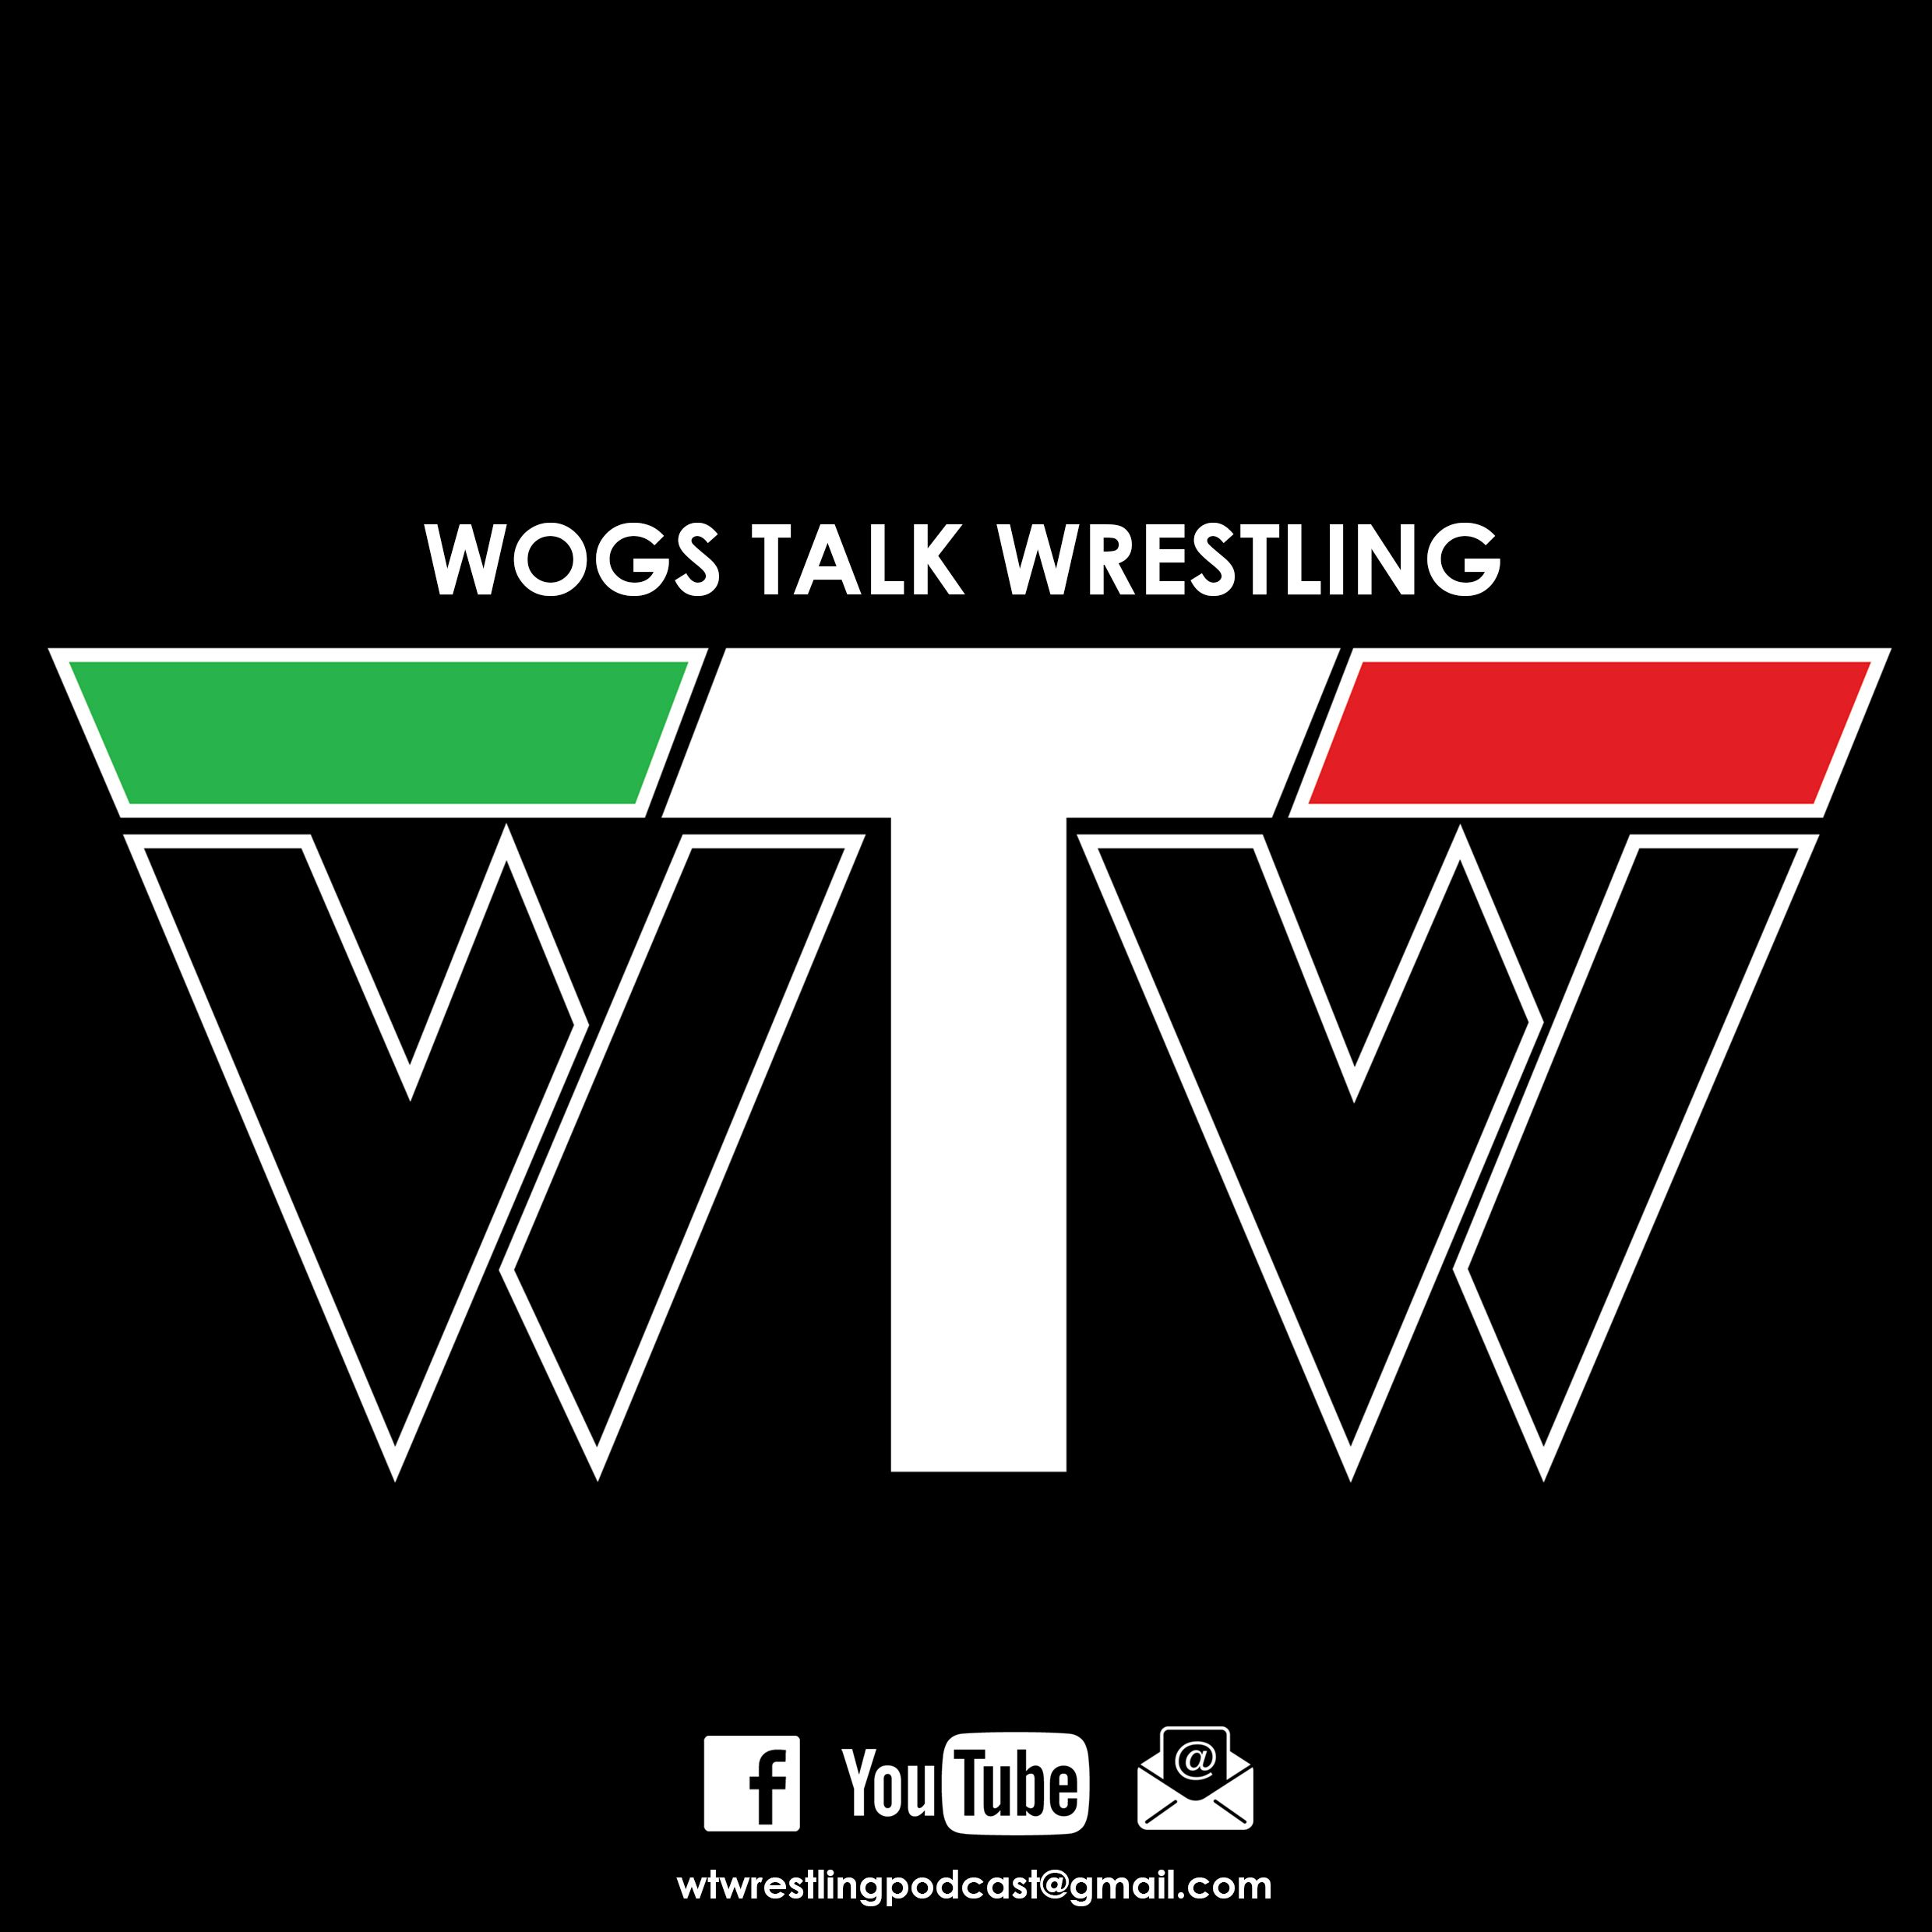 Wogs Talk Wrestling Podcast